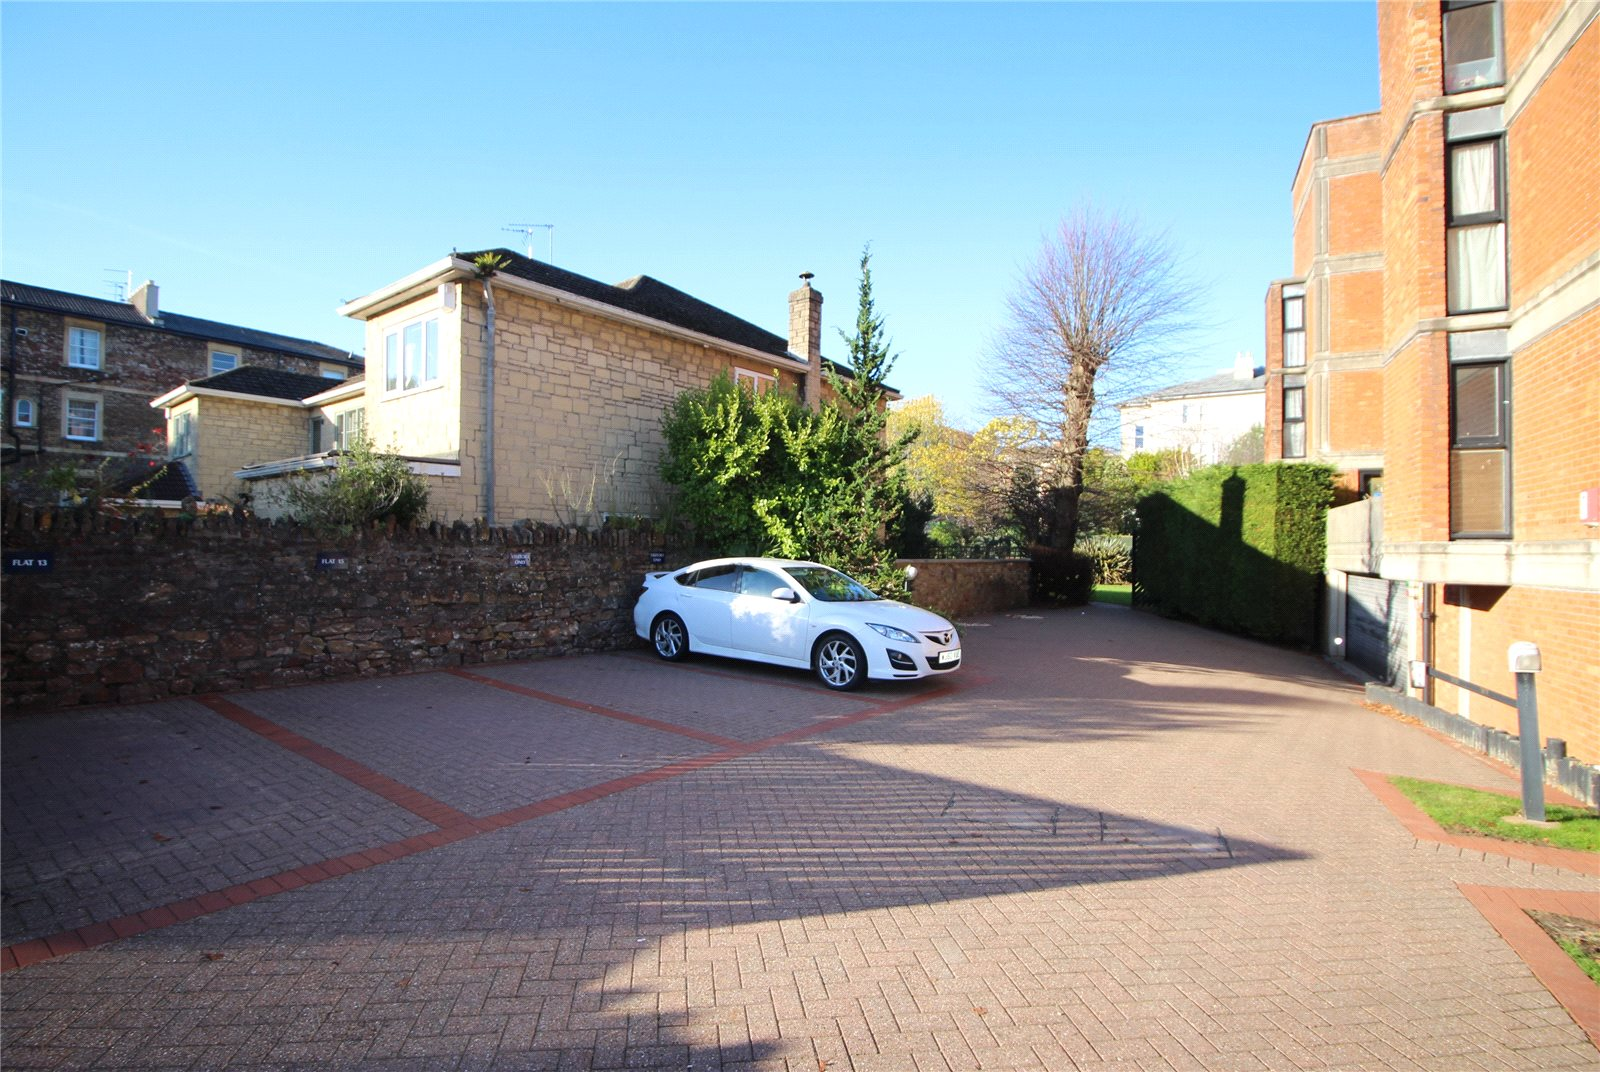 Cj Hole Clifton Old 2 Bedroom Flat For Sale In Shorland